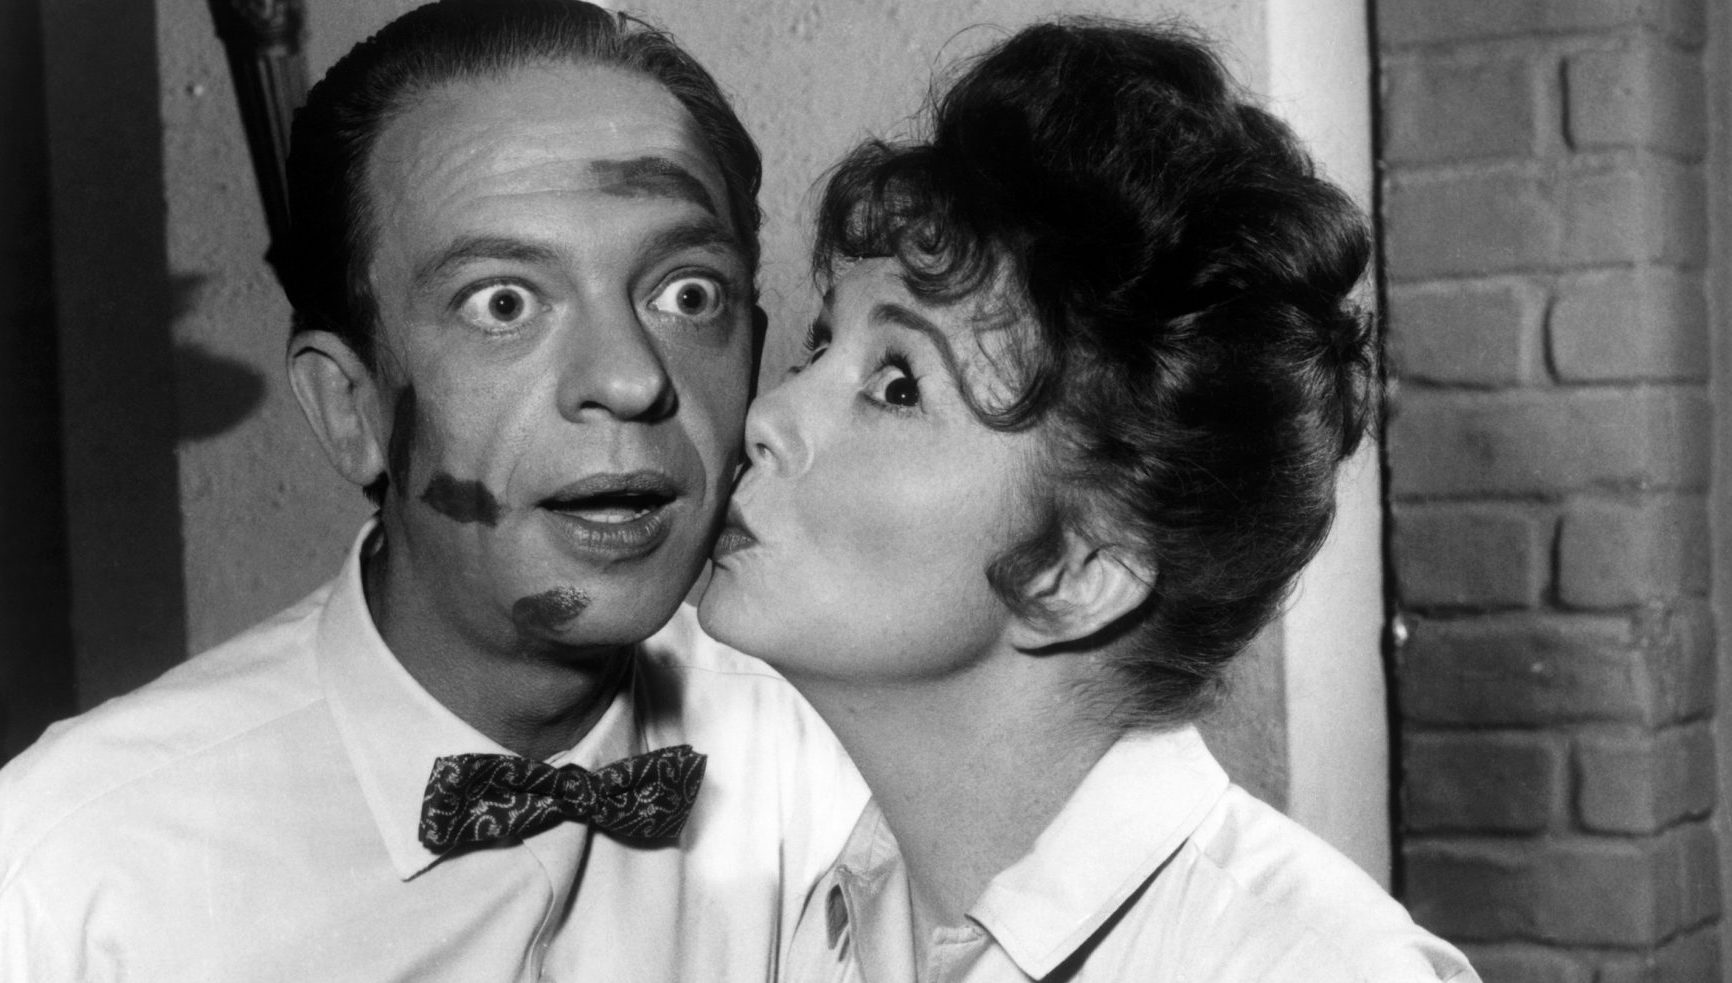 THE ANDY GRIFFITH SHOW, Don Knotts, Betty Lynn, 1960-68